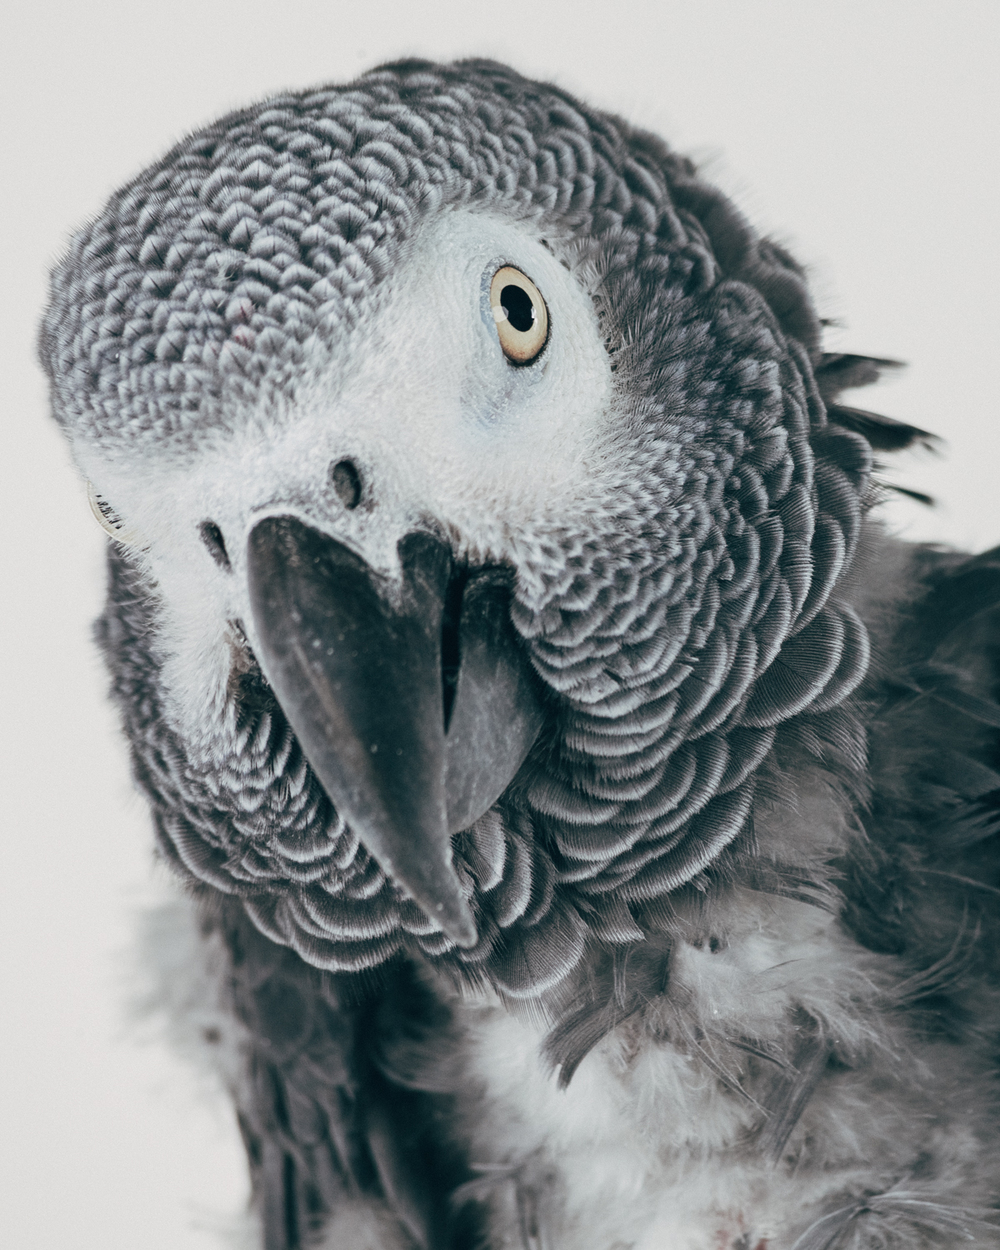 BUBBA    Male. African Gray (congo)                        ( Psittacus erithacus )  Age: 35  Arrived to the sanctuary in 2014 from California. He was in a flock environment but his flock was given away to someone else so Bubba started plucking himself more.  His owner, a veterinarian, sent Bubba to the sanctuary.